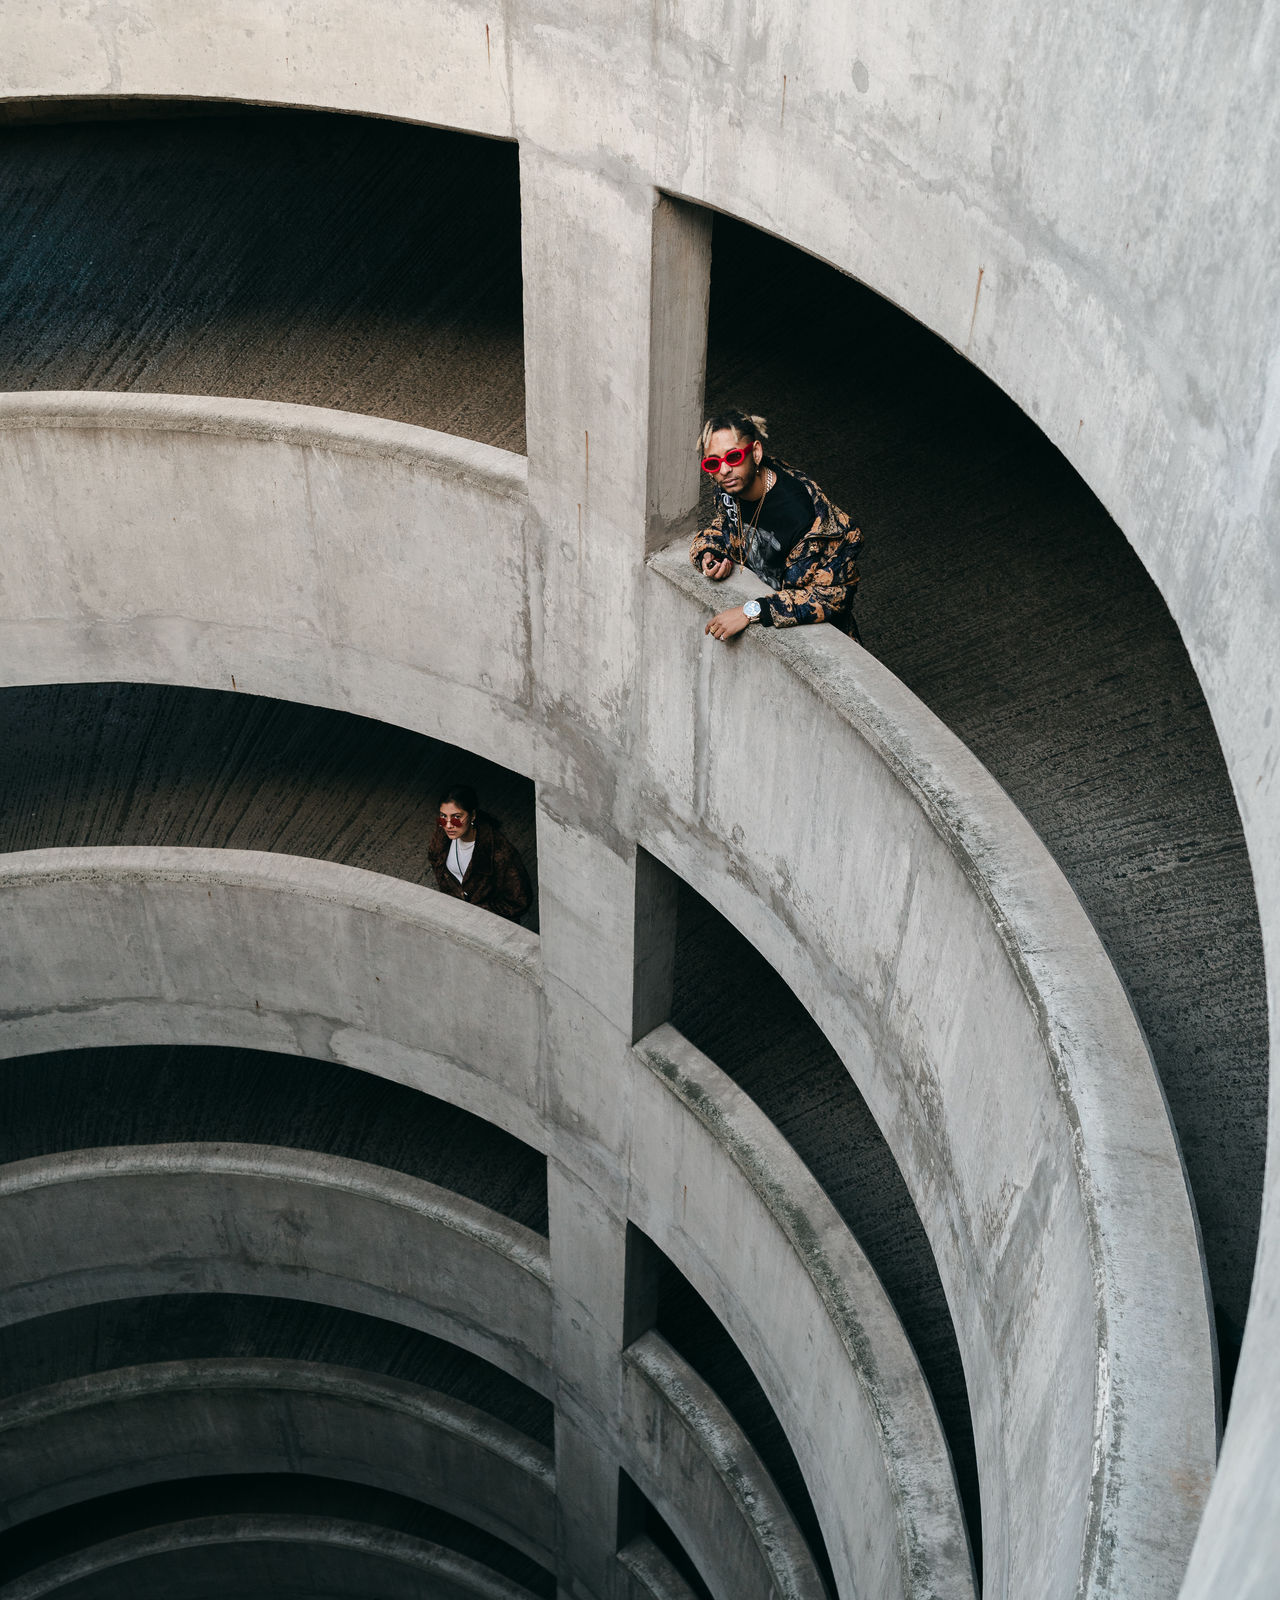 HIGH ANGLE VIEW OF PEOPLE ON VEHICLE